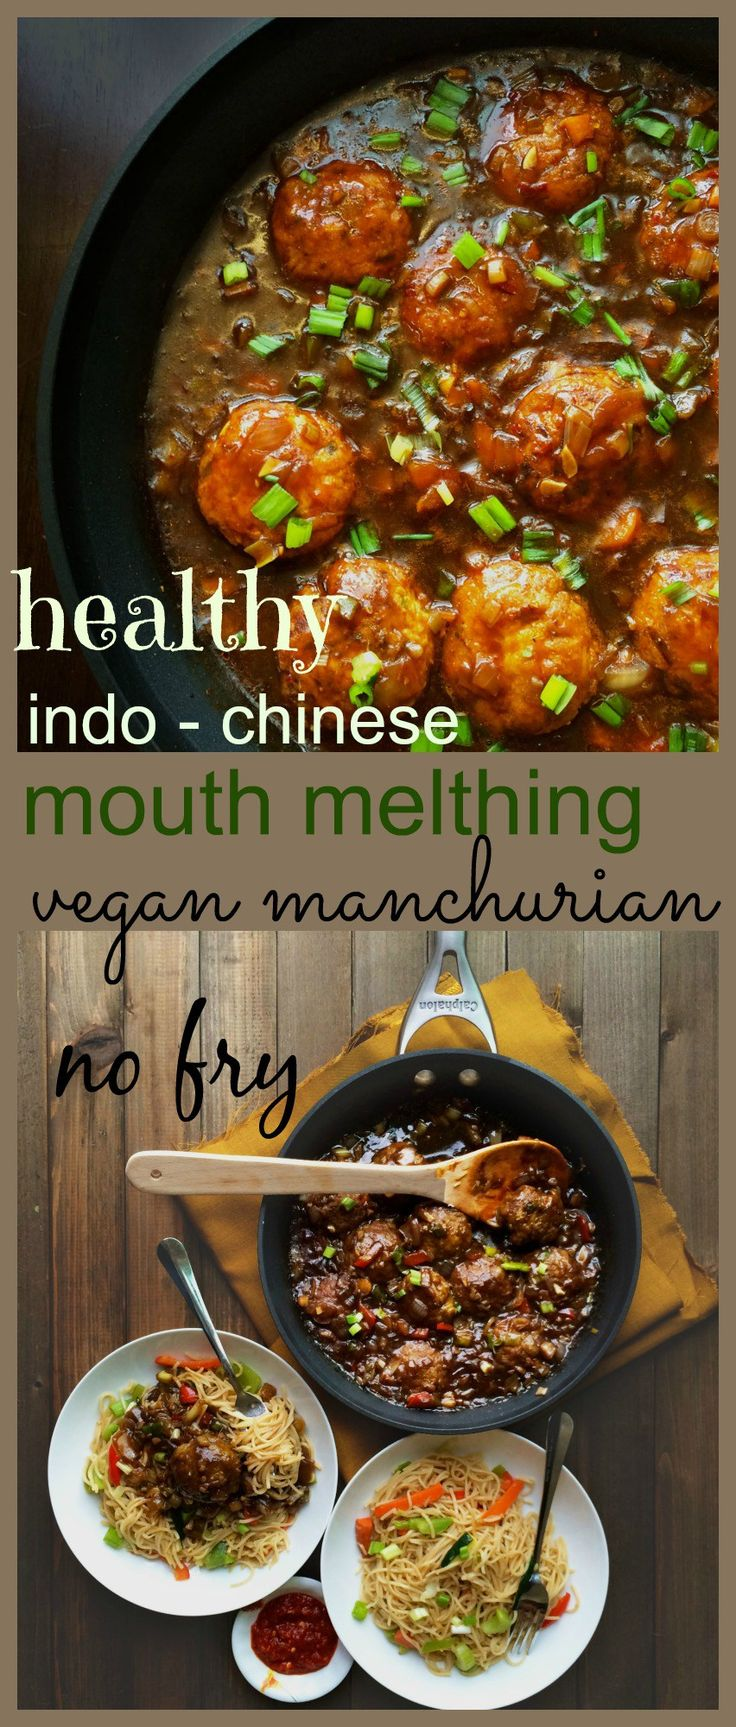 No fry vegetable dumplings in yummy sauce . It is vegan and gluten free. Only on www.carveyourcraving.com